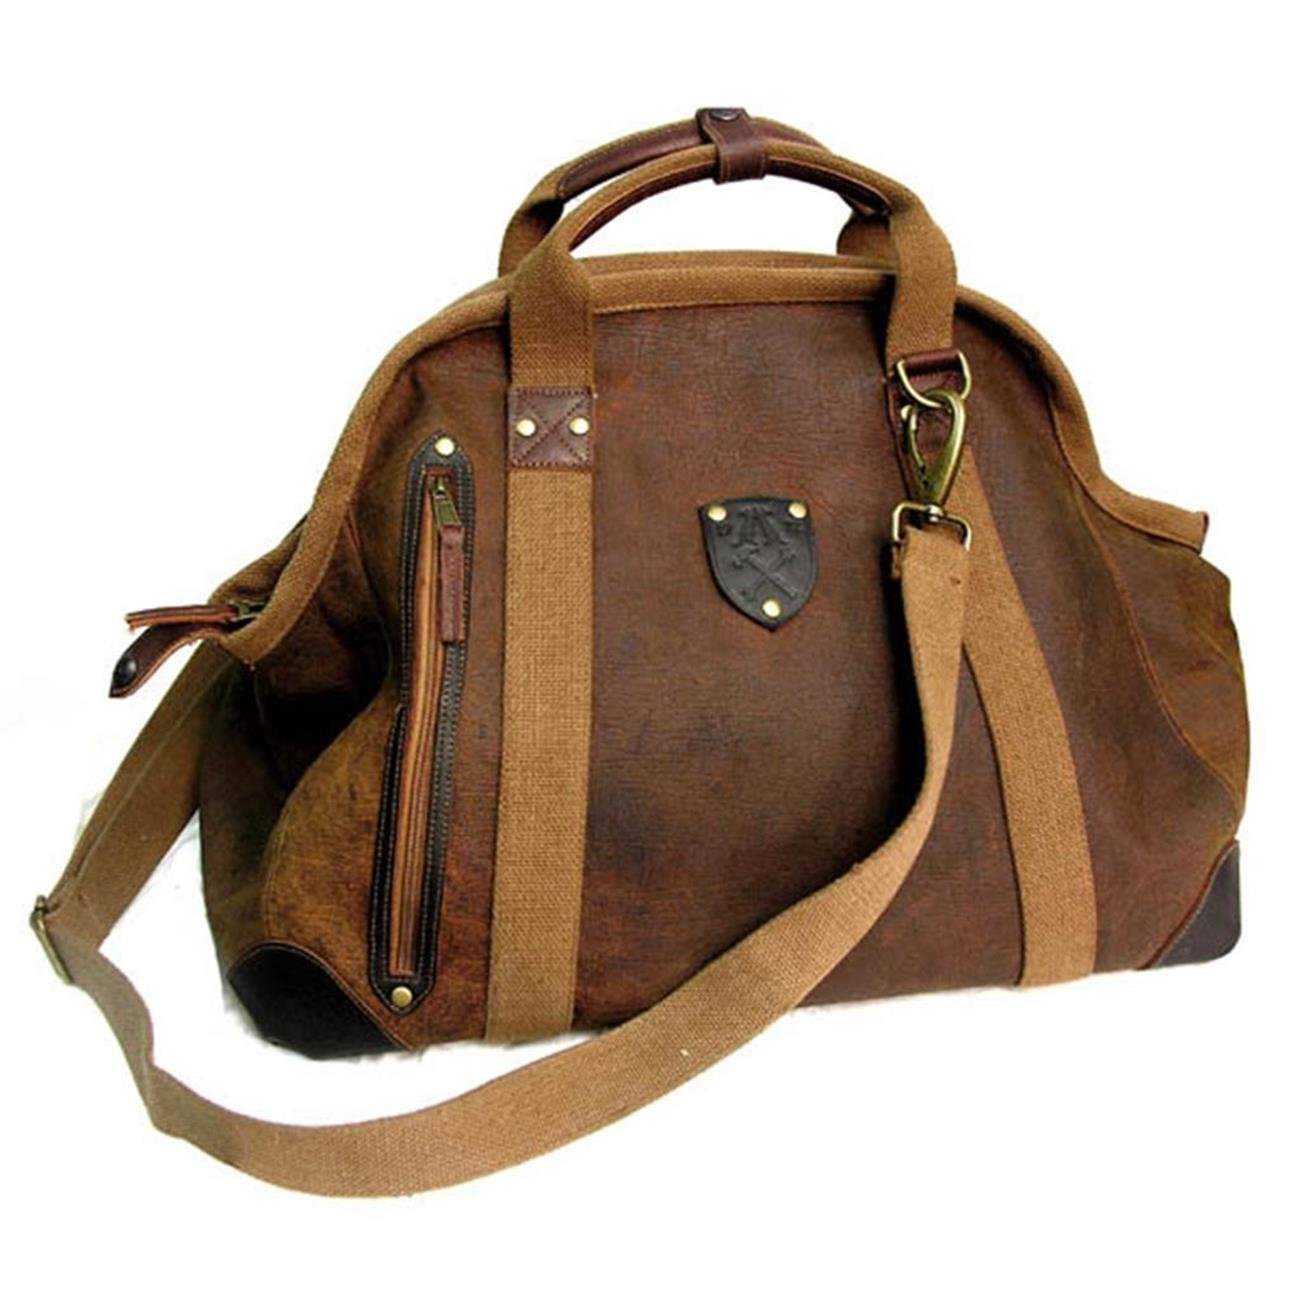 Kakadu Traders Traveller Series Large Doctor's Bag, made from Genuine Leather by KakaduTraders Australia